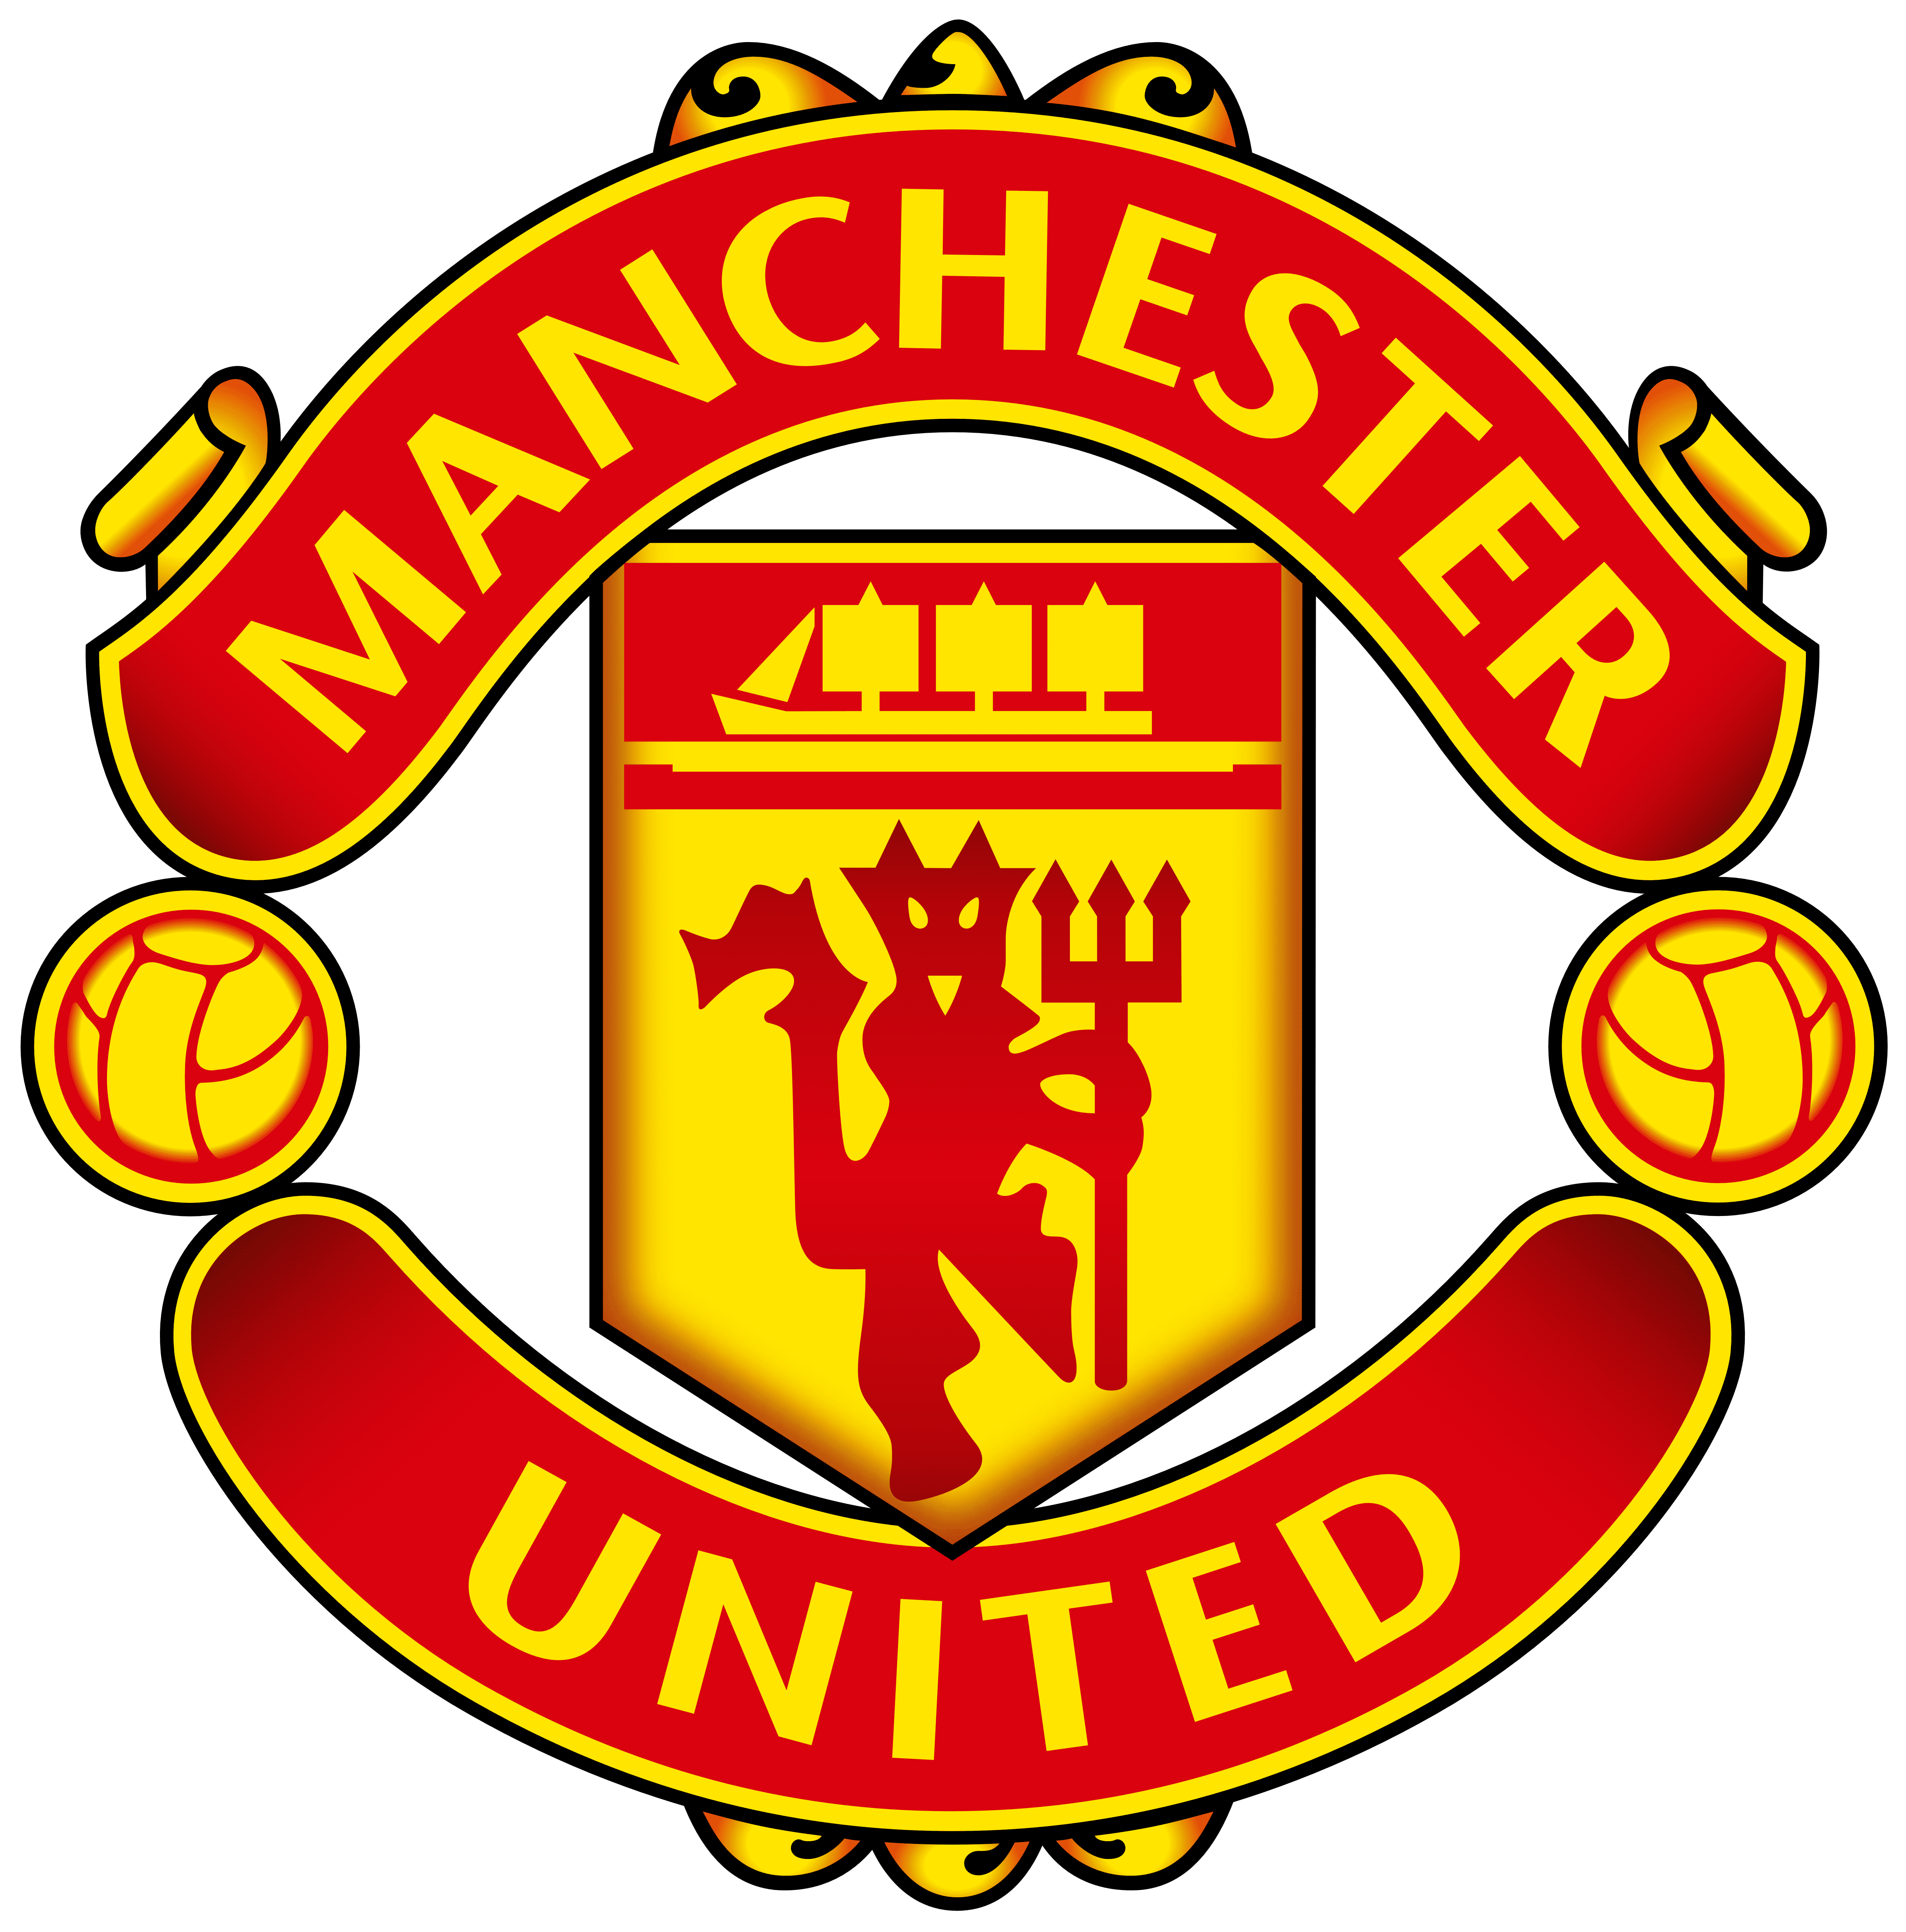 Manchester united logo manchester united symbol meaning history manchester united logo biocorpaavc Images